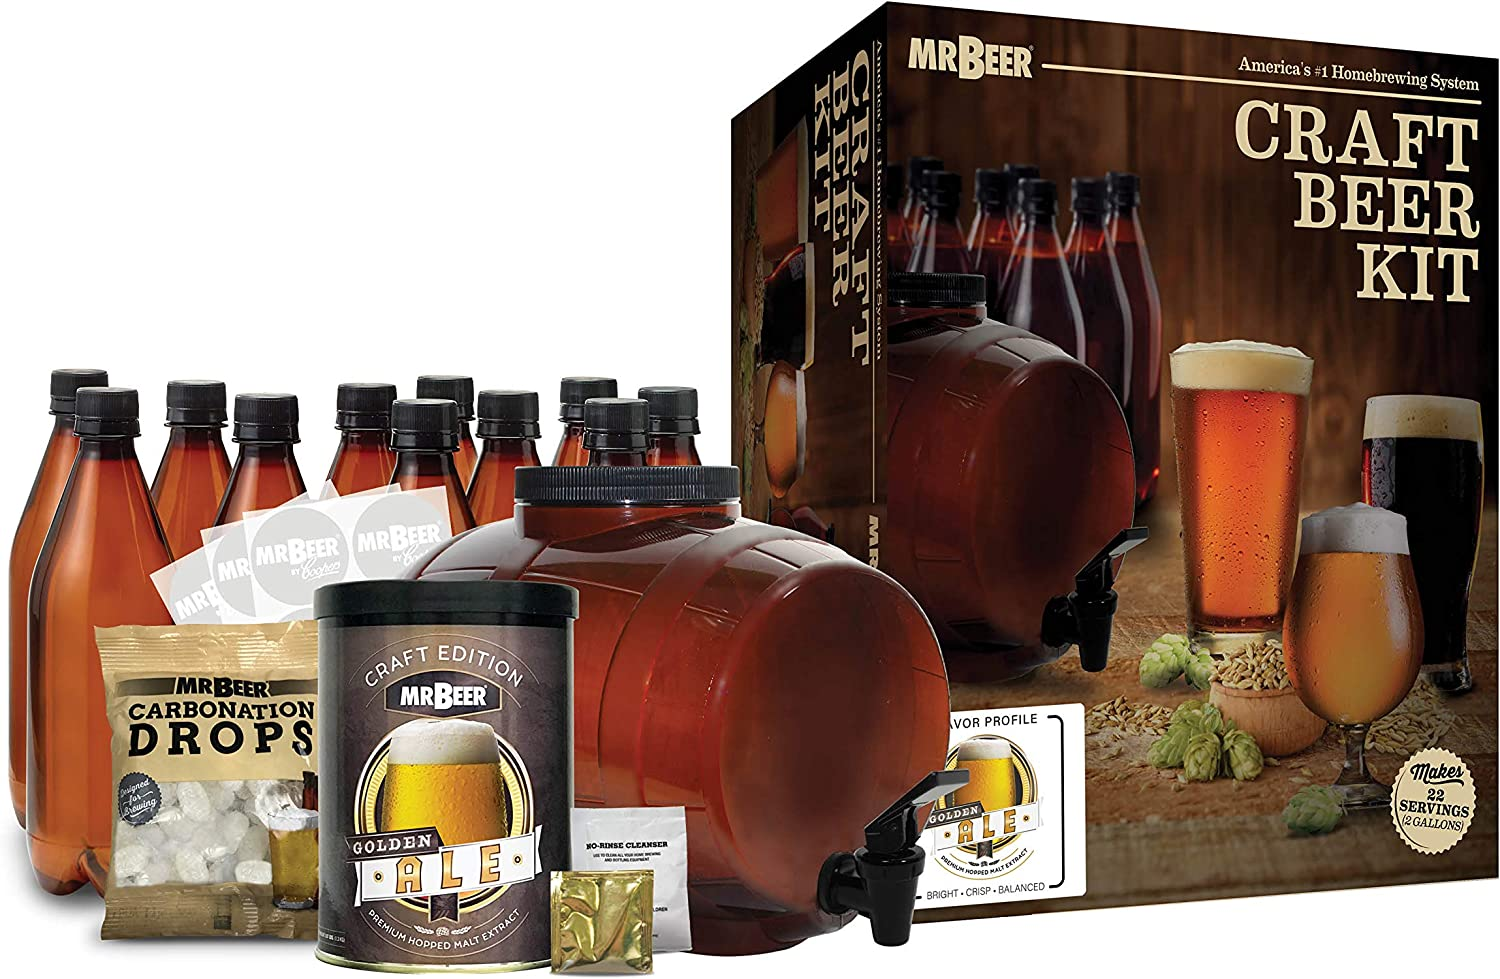 Mr. Beer 2 Gallon Complete Starter Beer Making Kit Perfect for Beginners